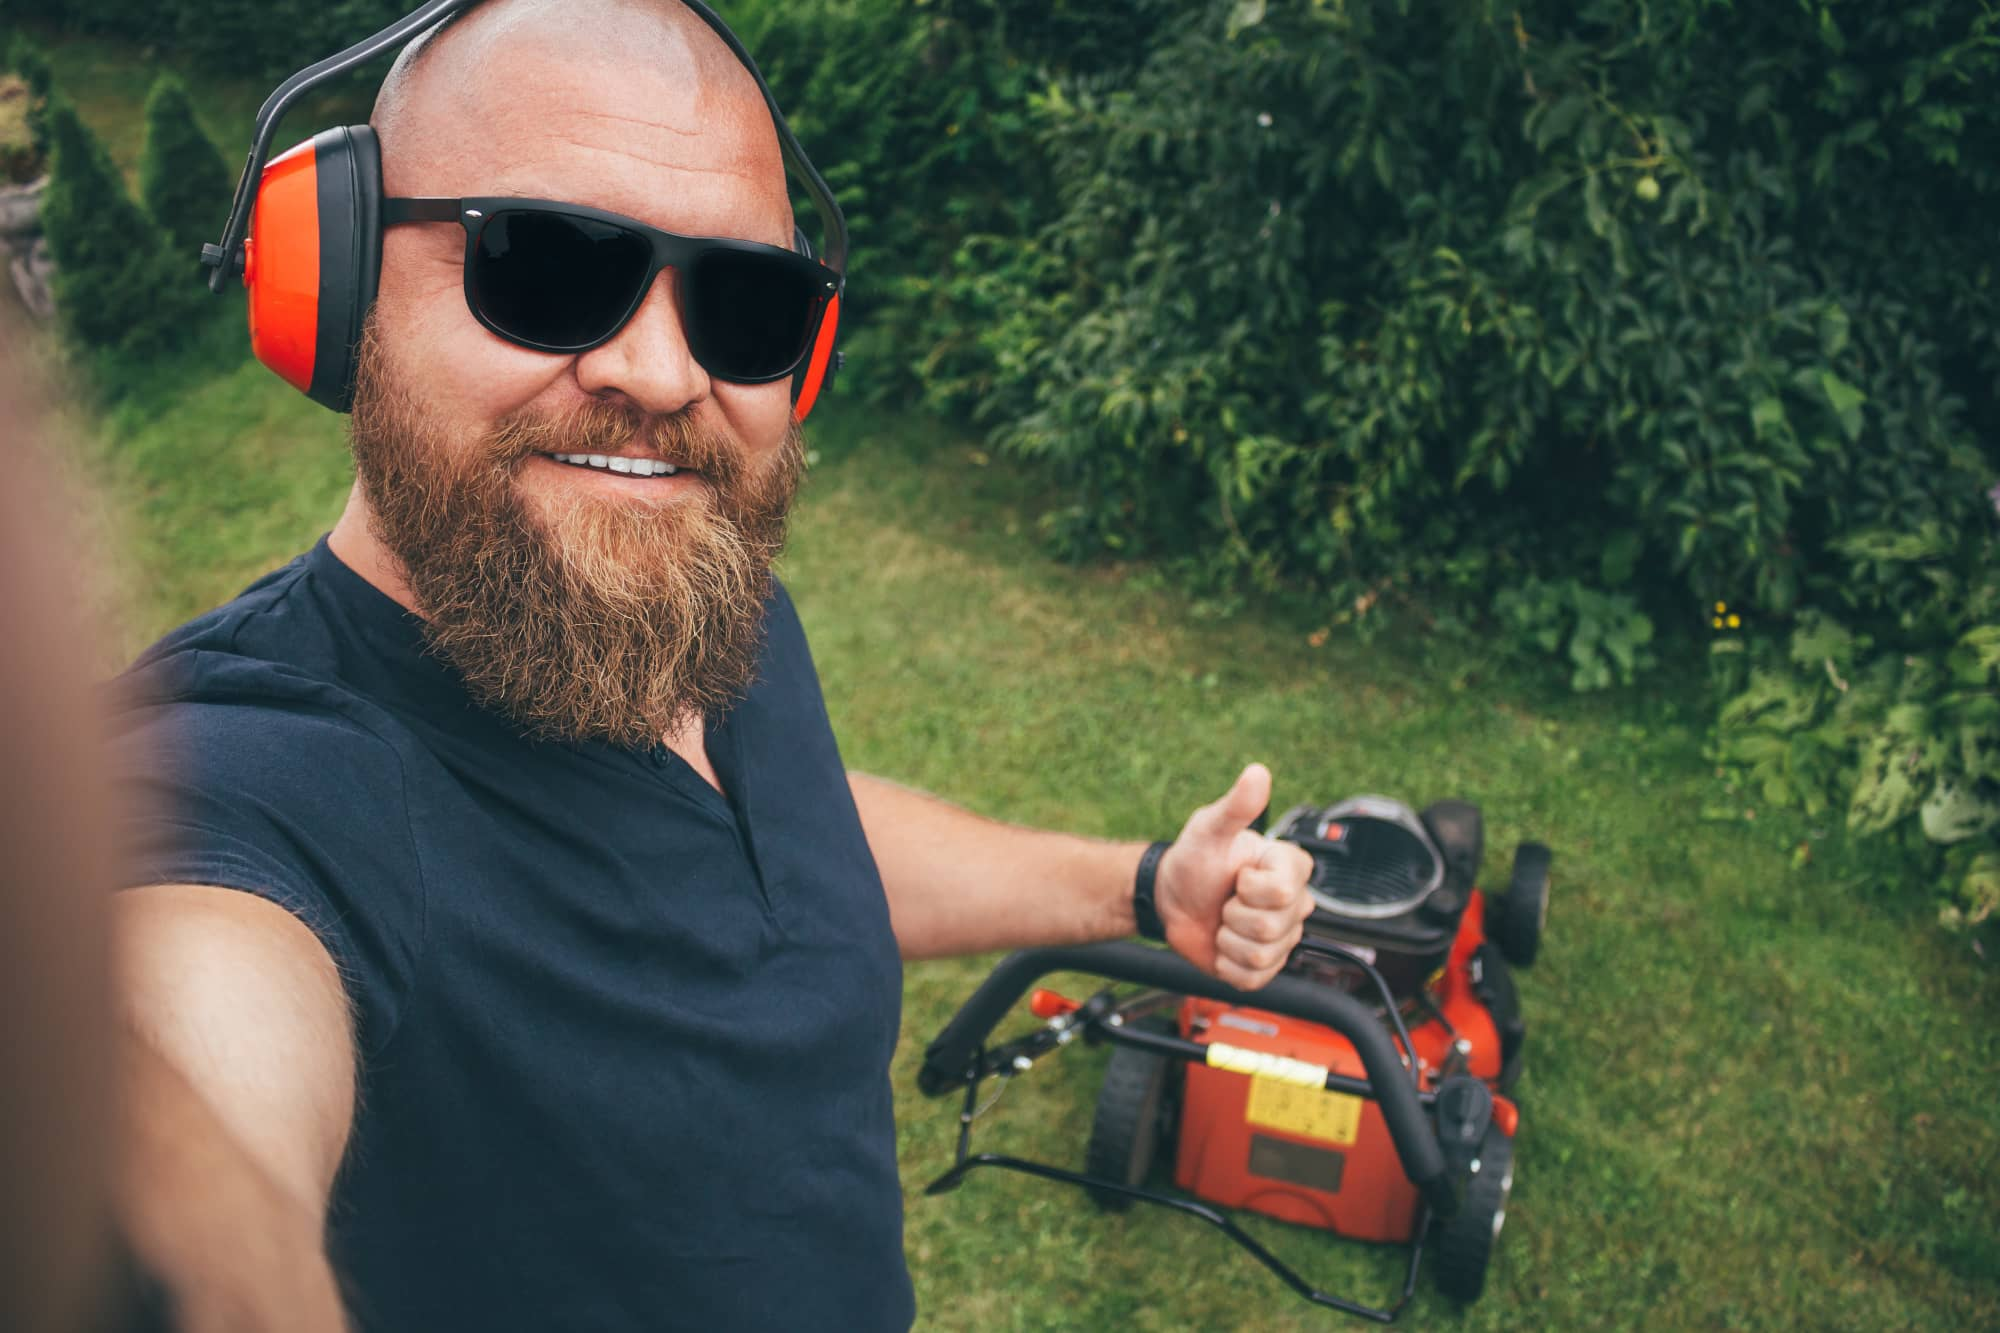 Bearded man mowing lawn